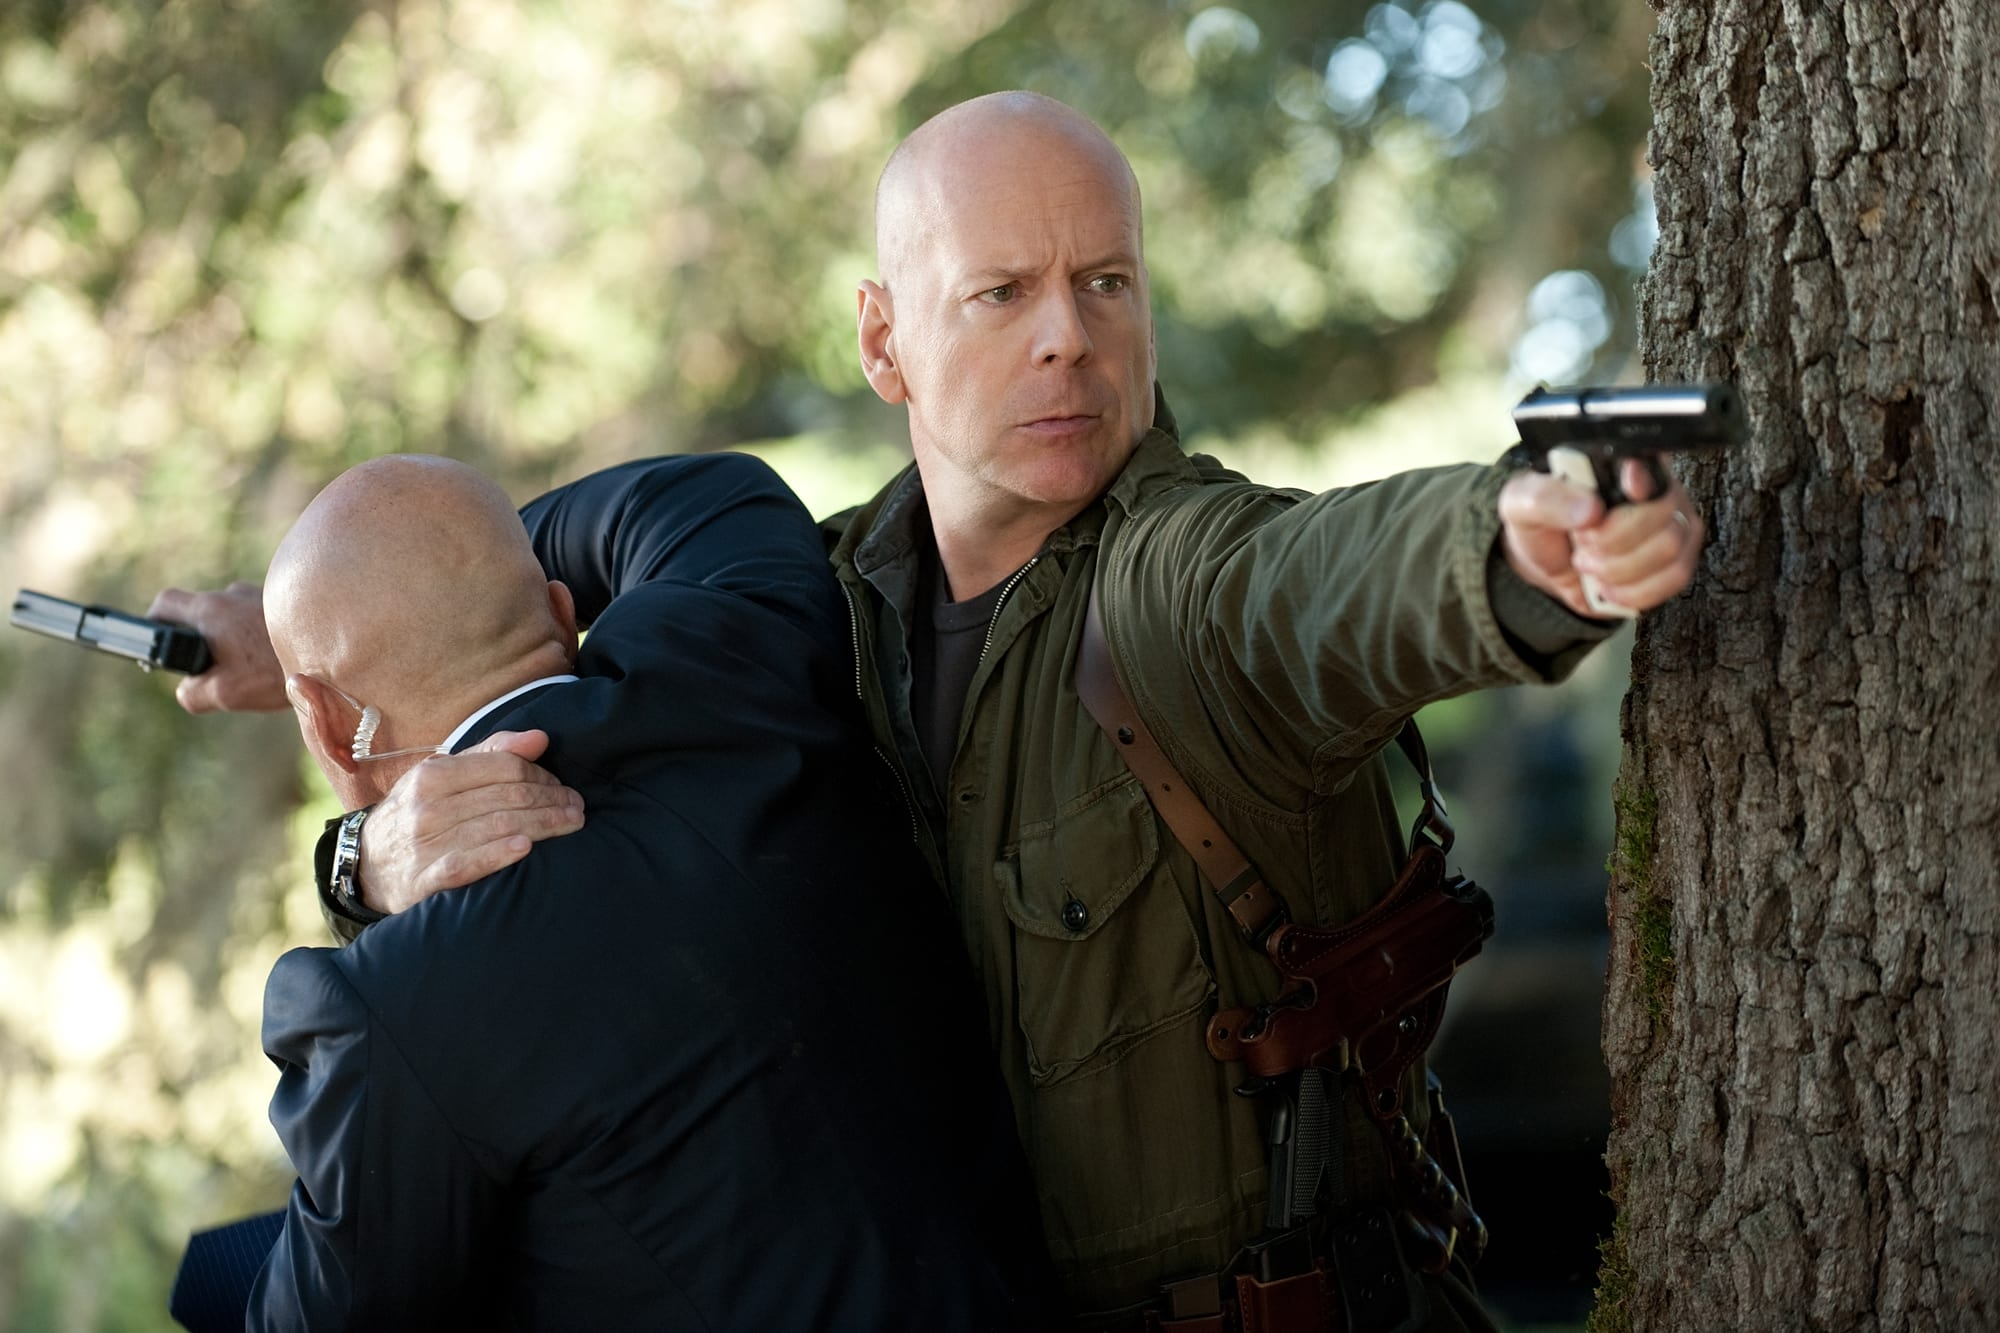 Bruce Willis is not done with movies